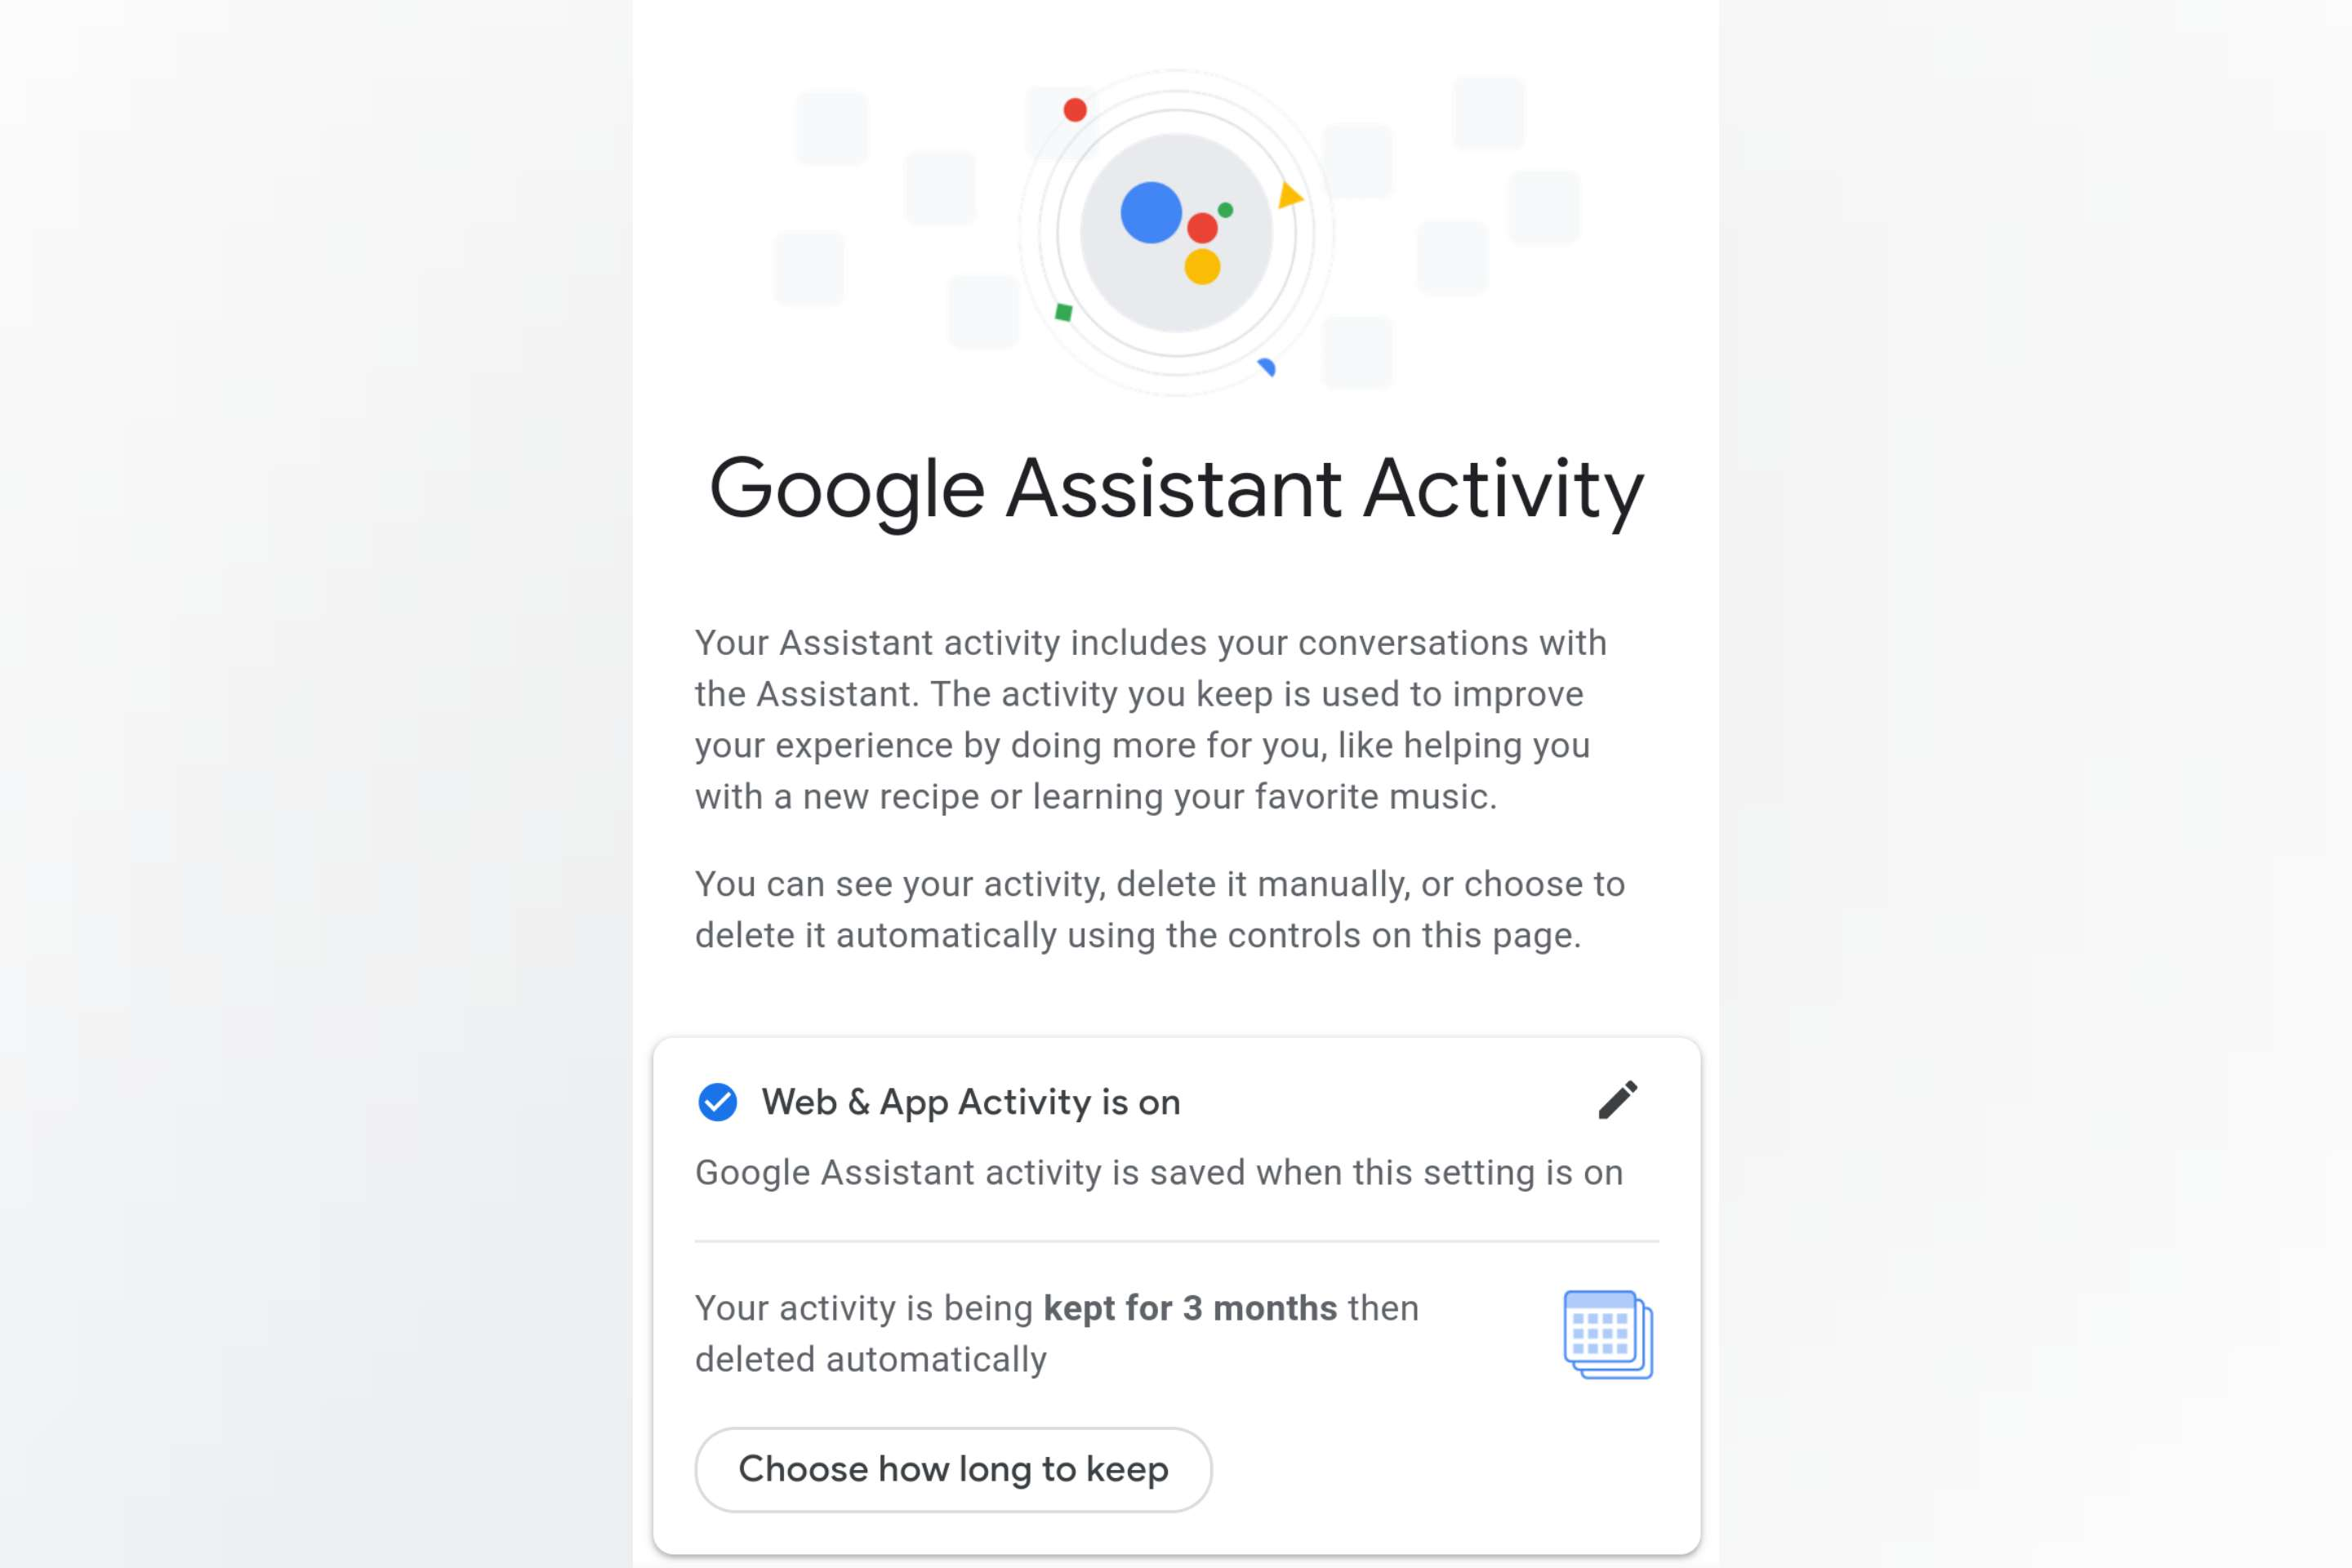 Google Voice & Audio Activity